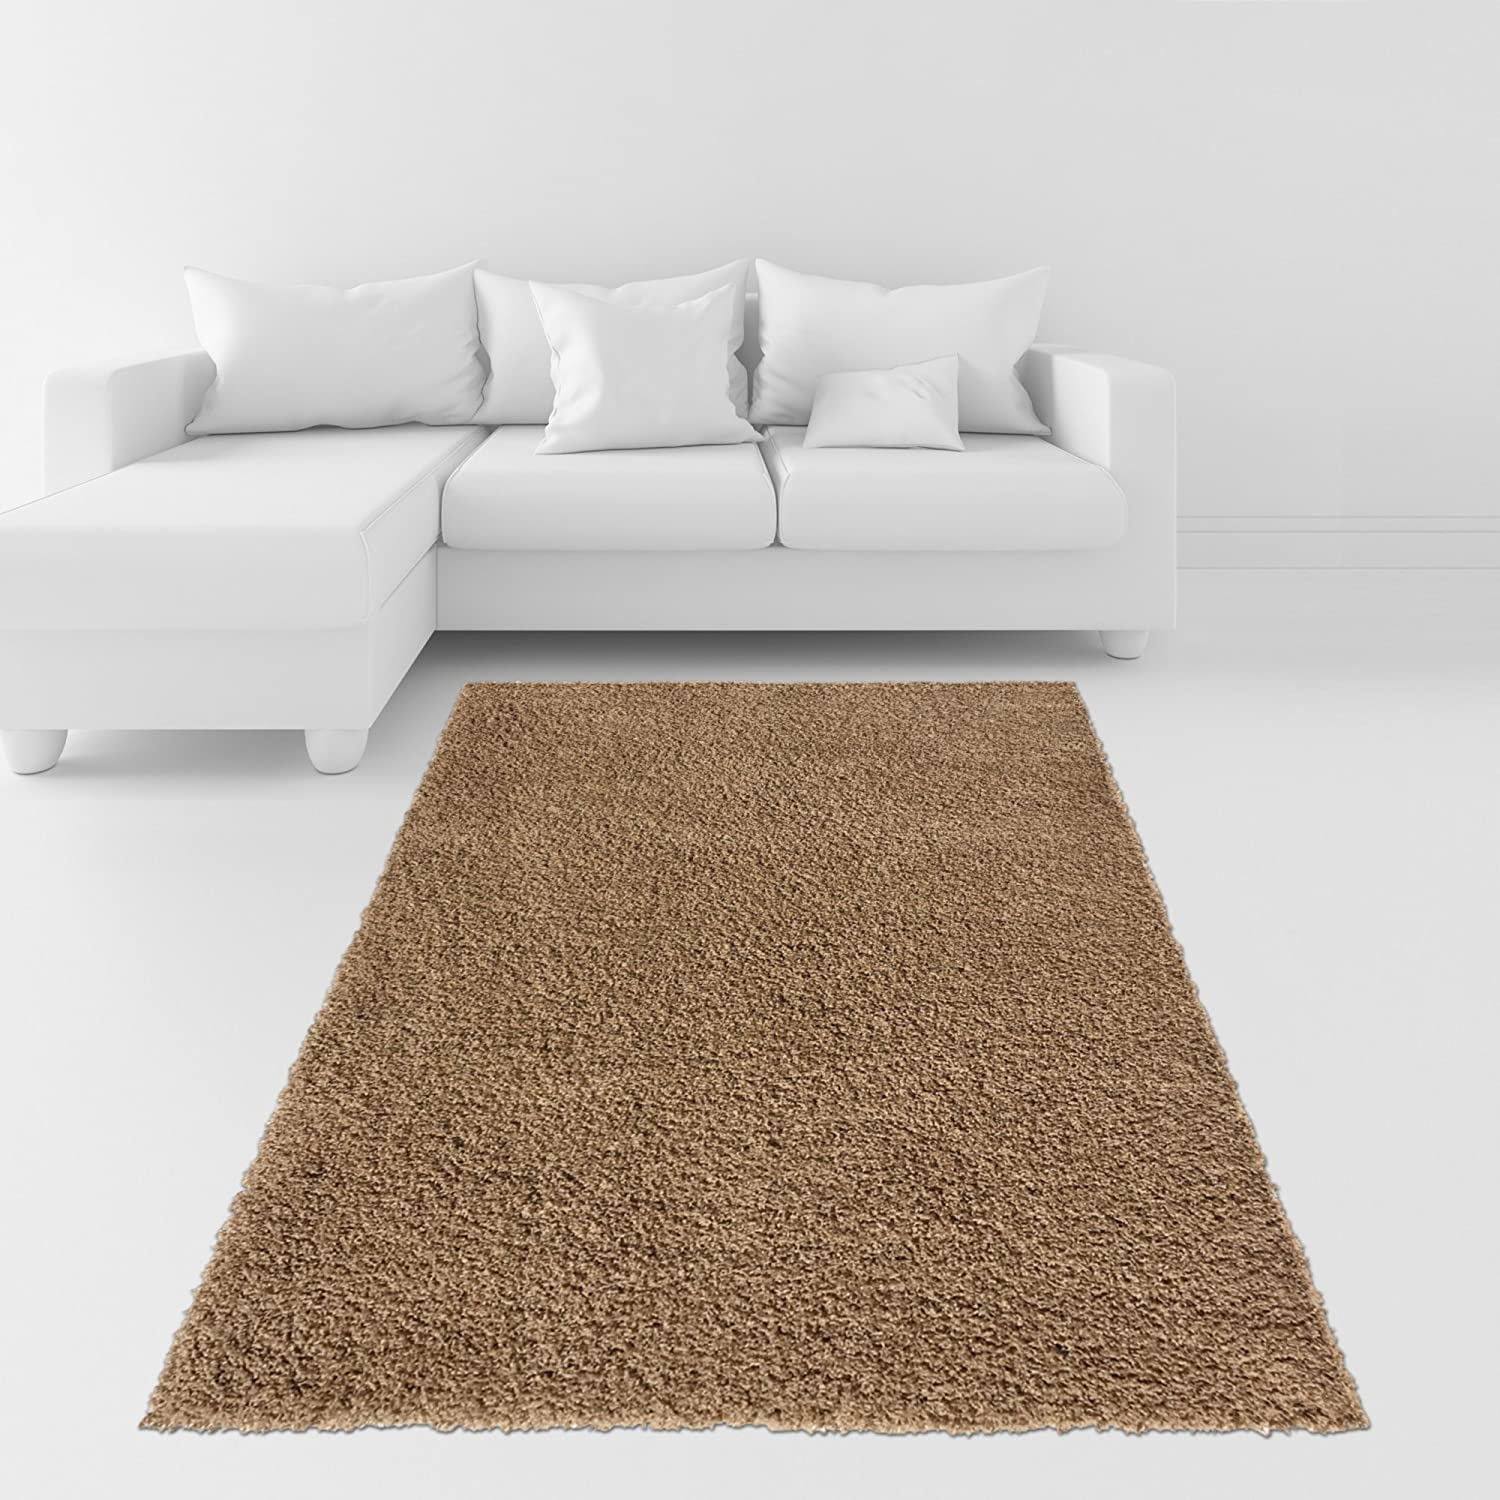 amazoncom soft shag area rug x plain solid color beige  - amazoncom soft shag area rug x plain solid color beige  contemporary arearugs for living room bedroom kitchen decorative modern shaggy rugs kitchen